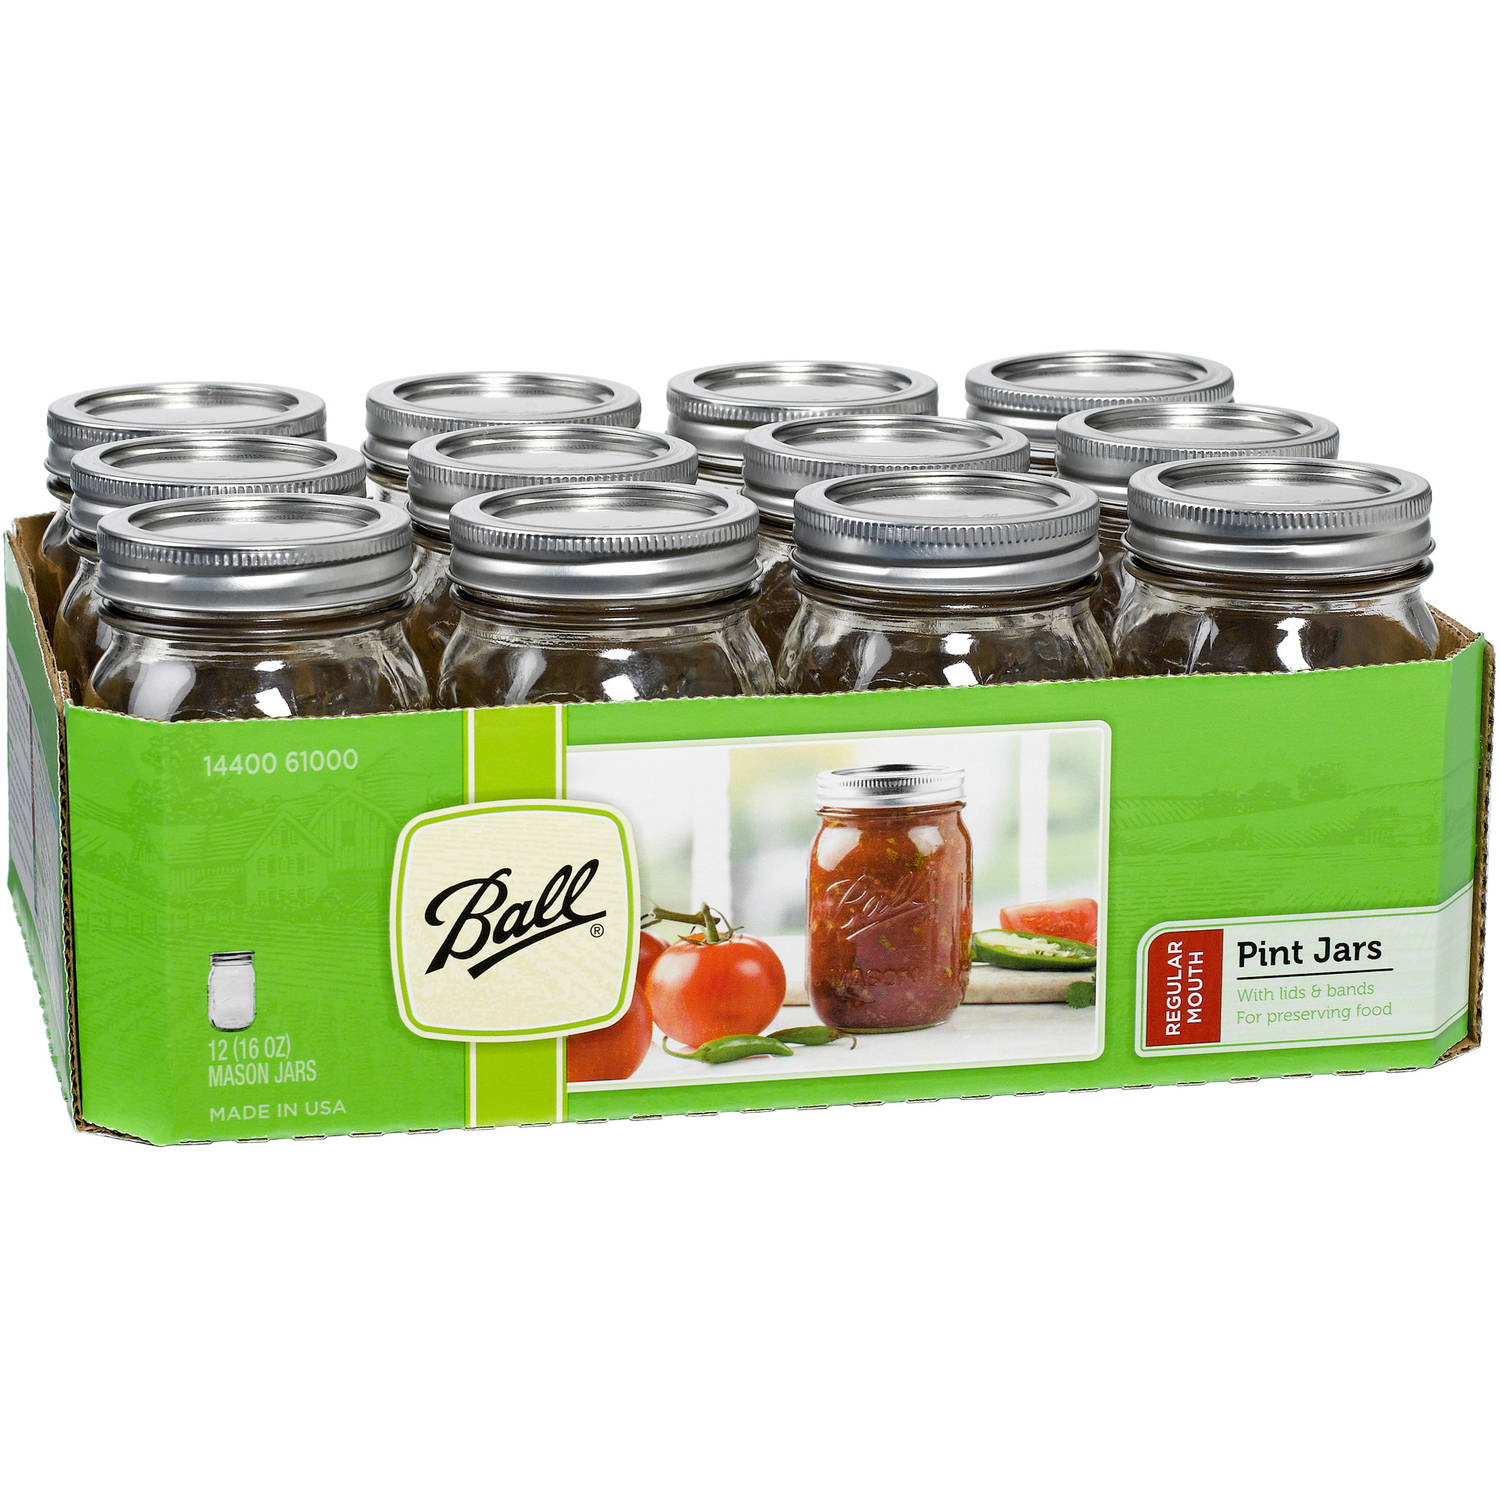 Ball Canning Jar Regular Mouth with Lid, 12pk